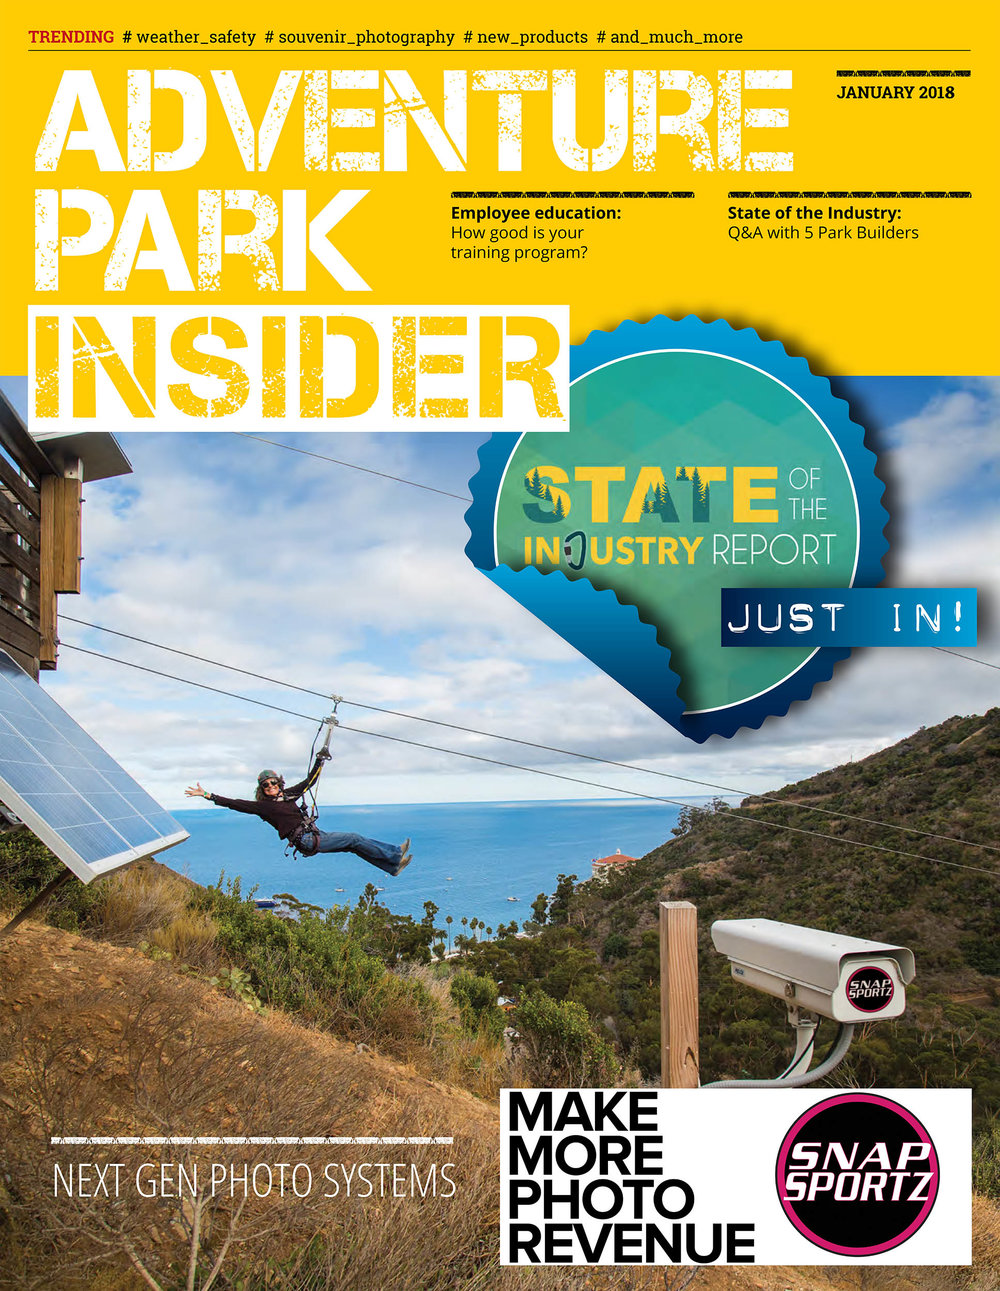 Snapsportz system at Santa Catalina Eco Tours on the cover of Adventure Park Insider.